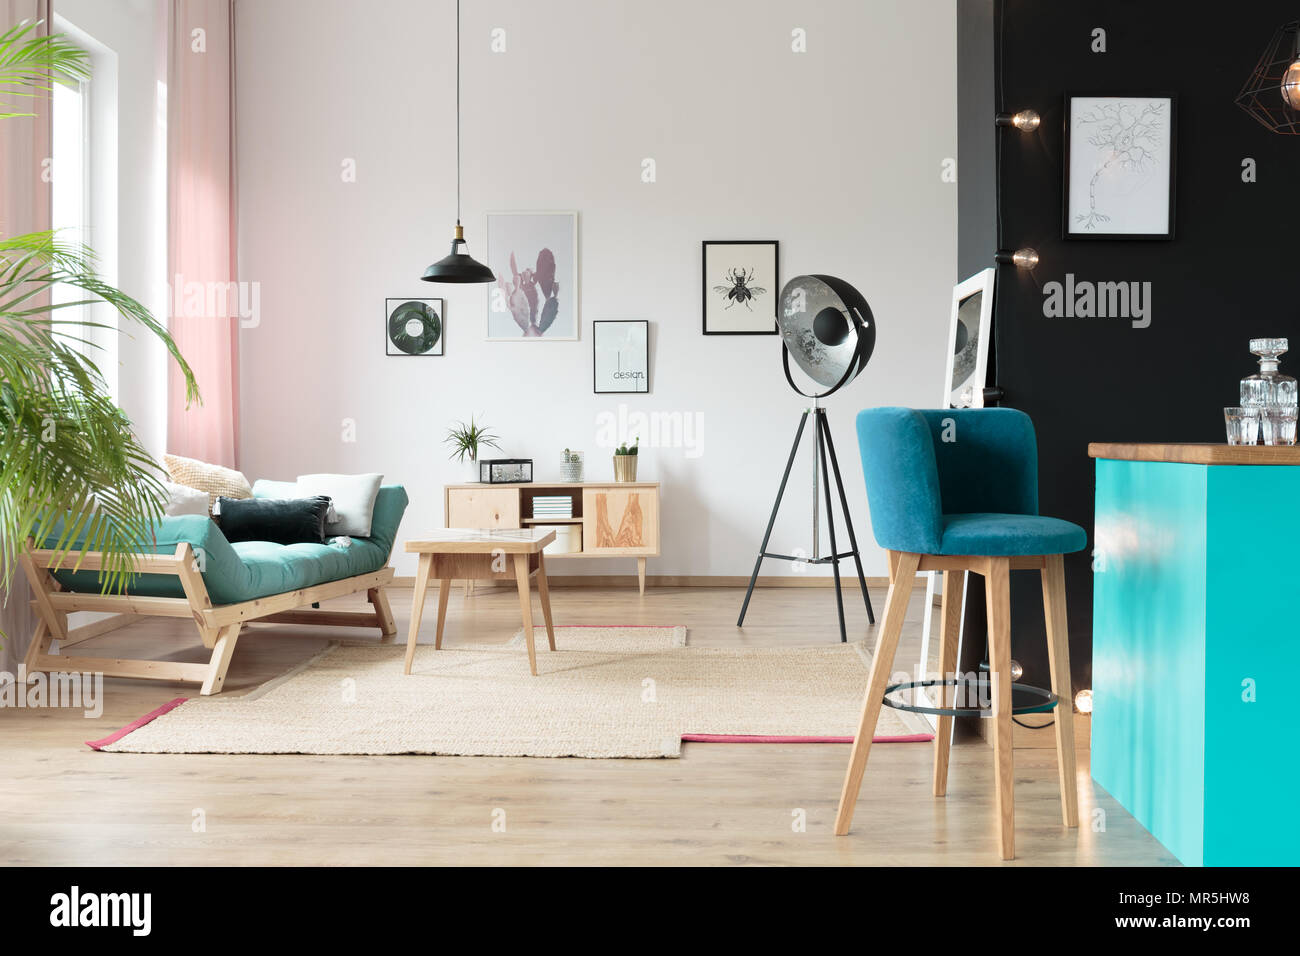 Blue barstool in kitchen area in warm room with turquoise settee with pillows and table on carpet - Stock Image